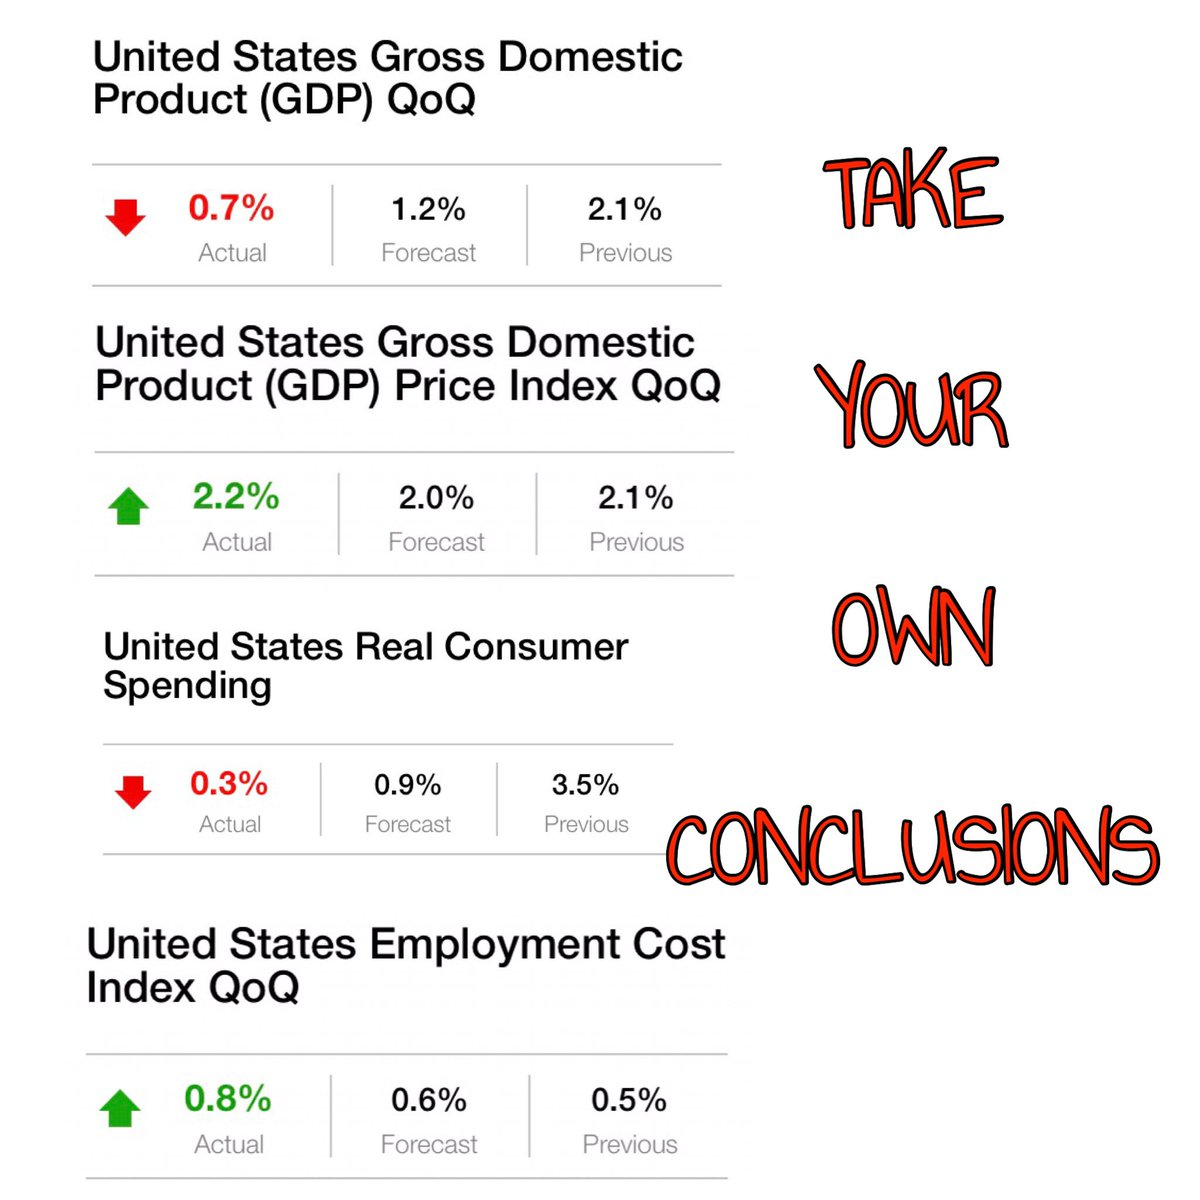 #USA #GDP data at #Trump #100days speak by itself. Take your own conclusions. $SPY $DIA $IWM $GLD $SLV #USD #EURUSD #JPY #Gold #Silver #VIX<br>http://pic.twitter.com/kC7tsVWy0K